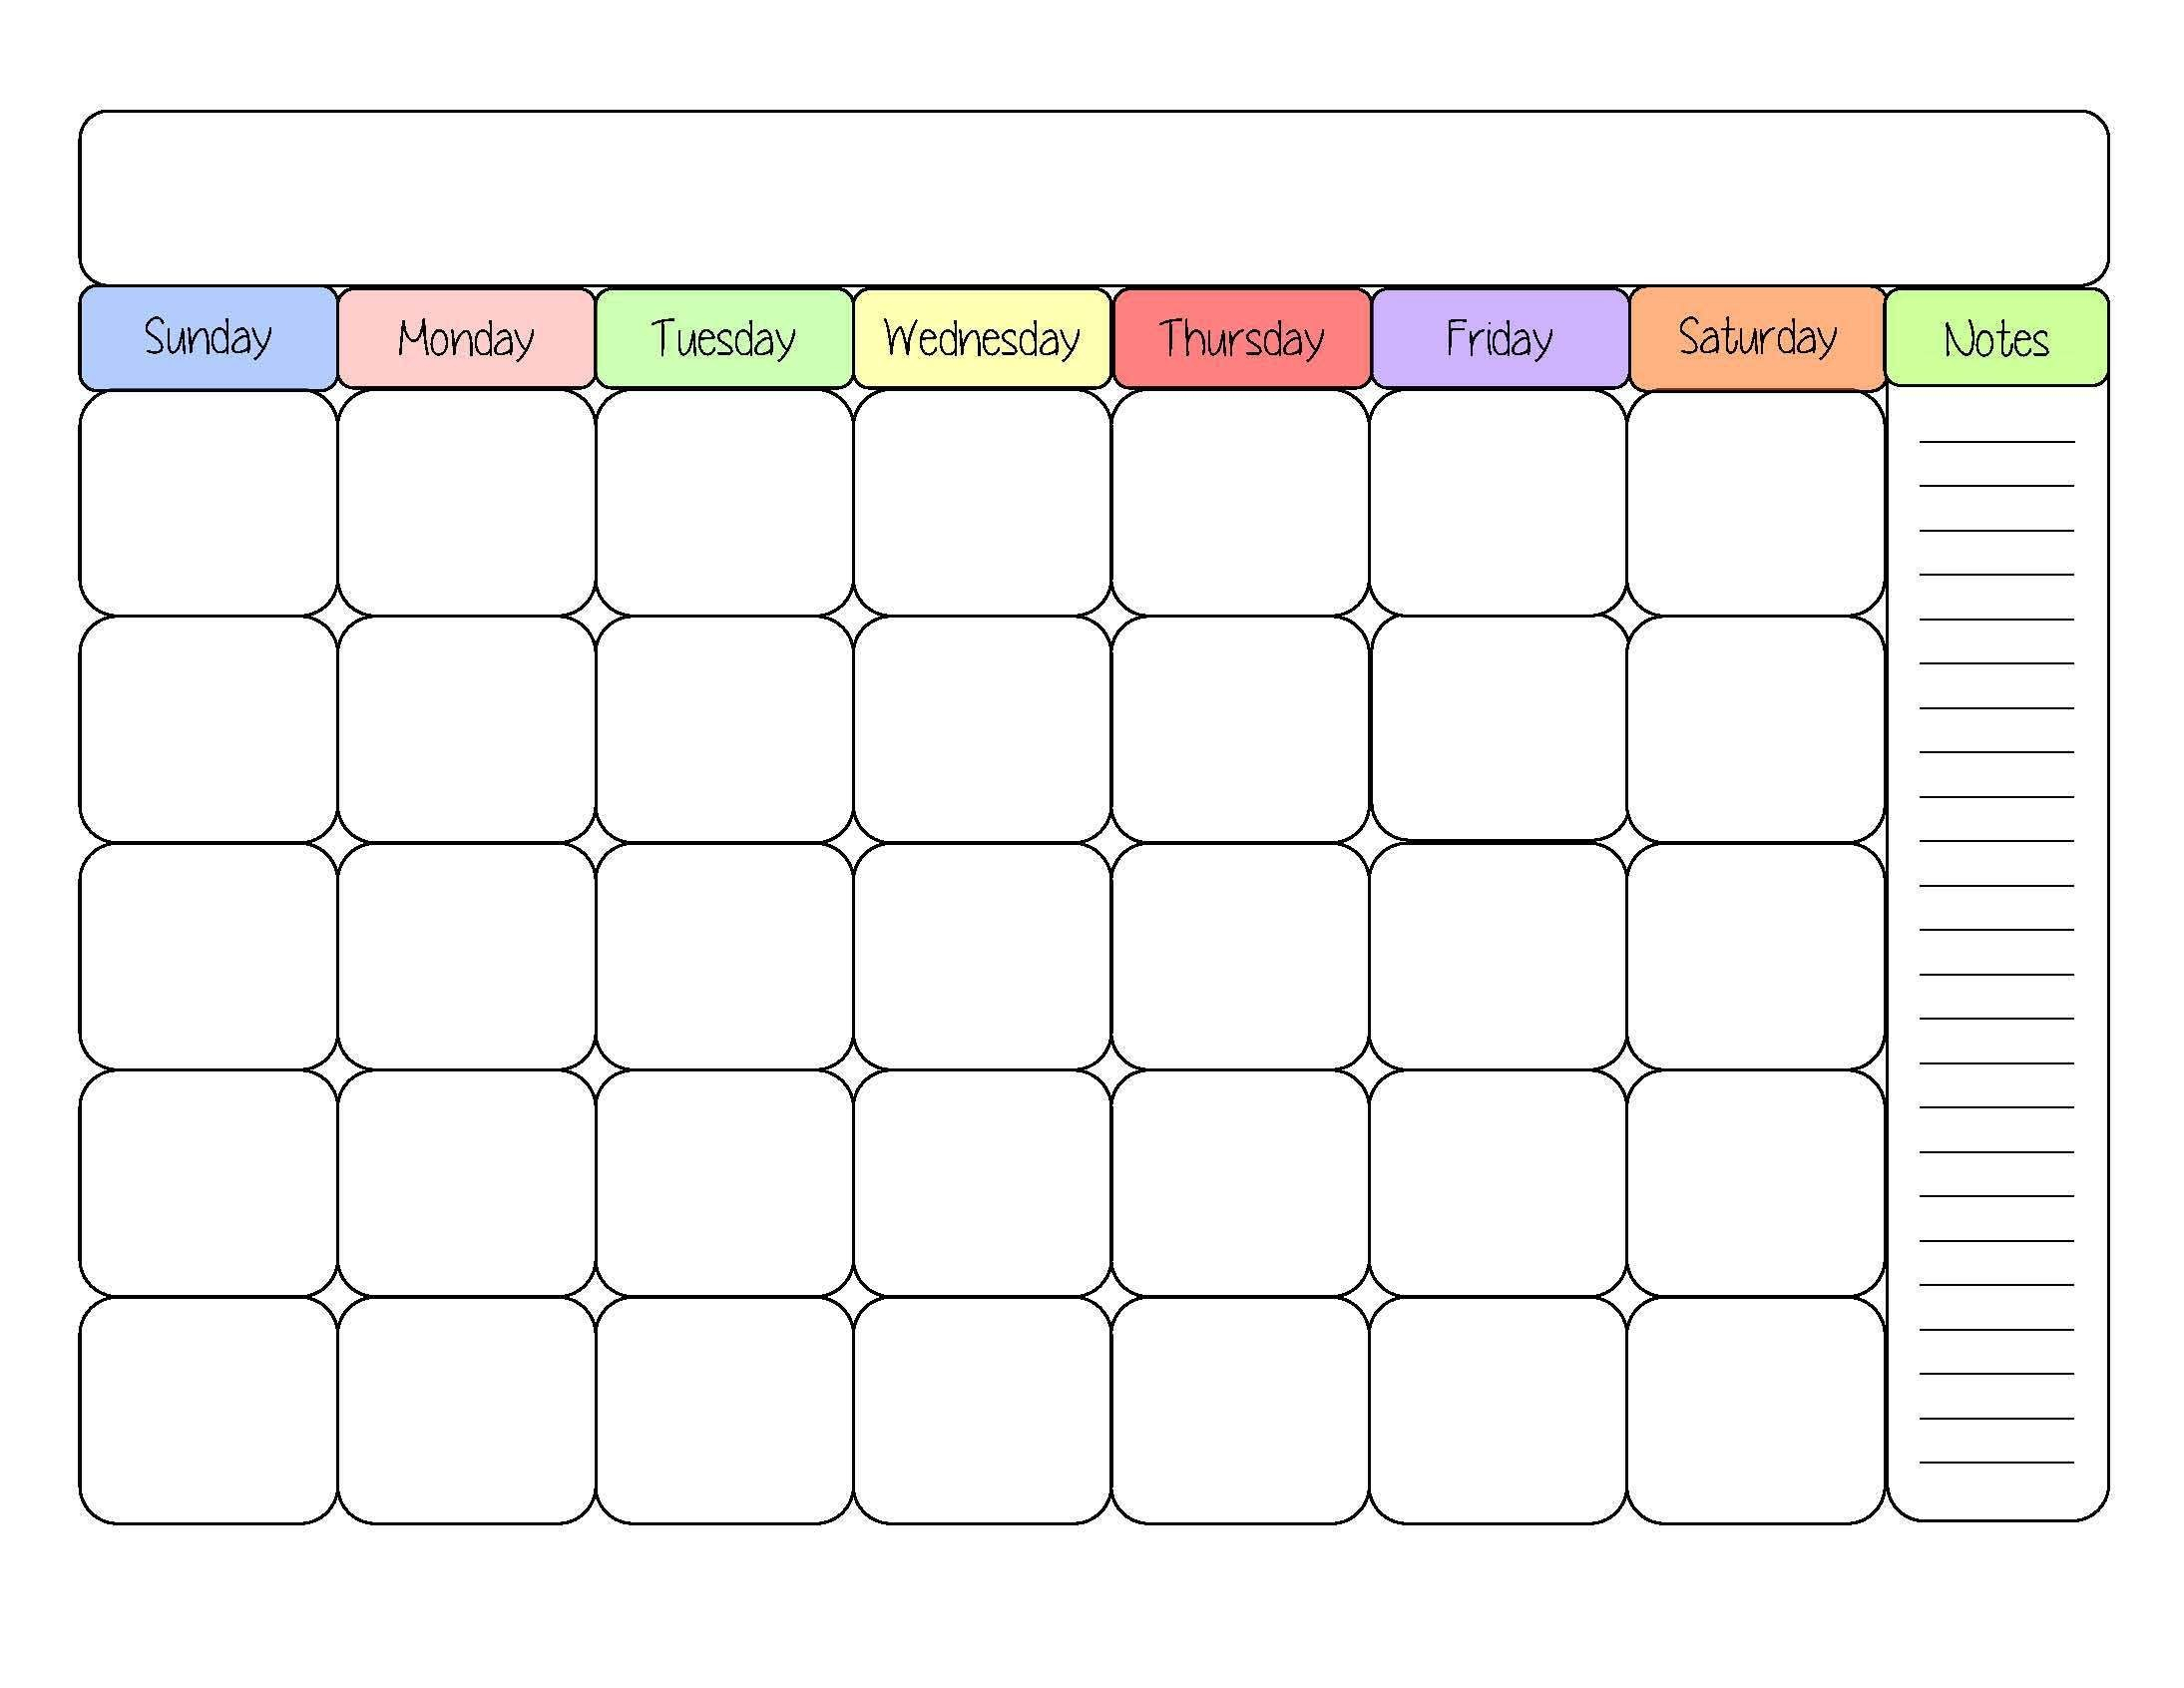 Blank Classroom Calendars Download For Zero Cost - Calendaro.download